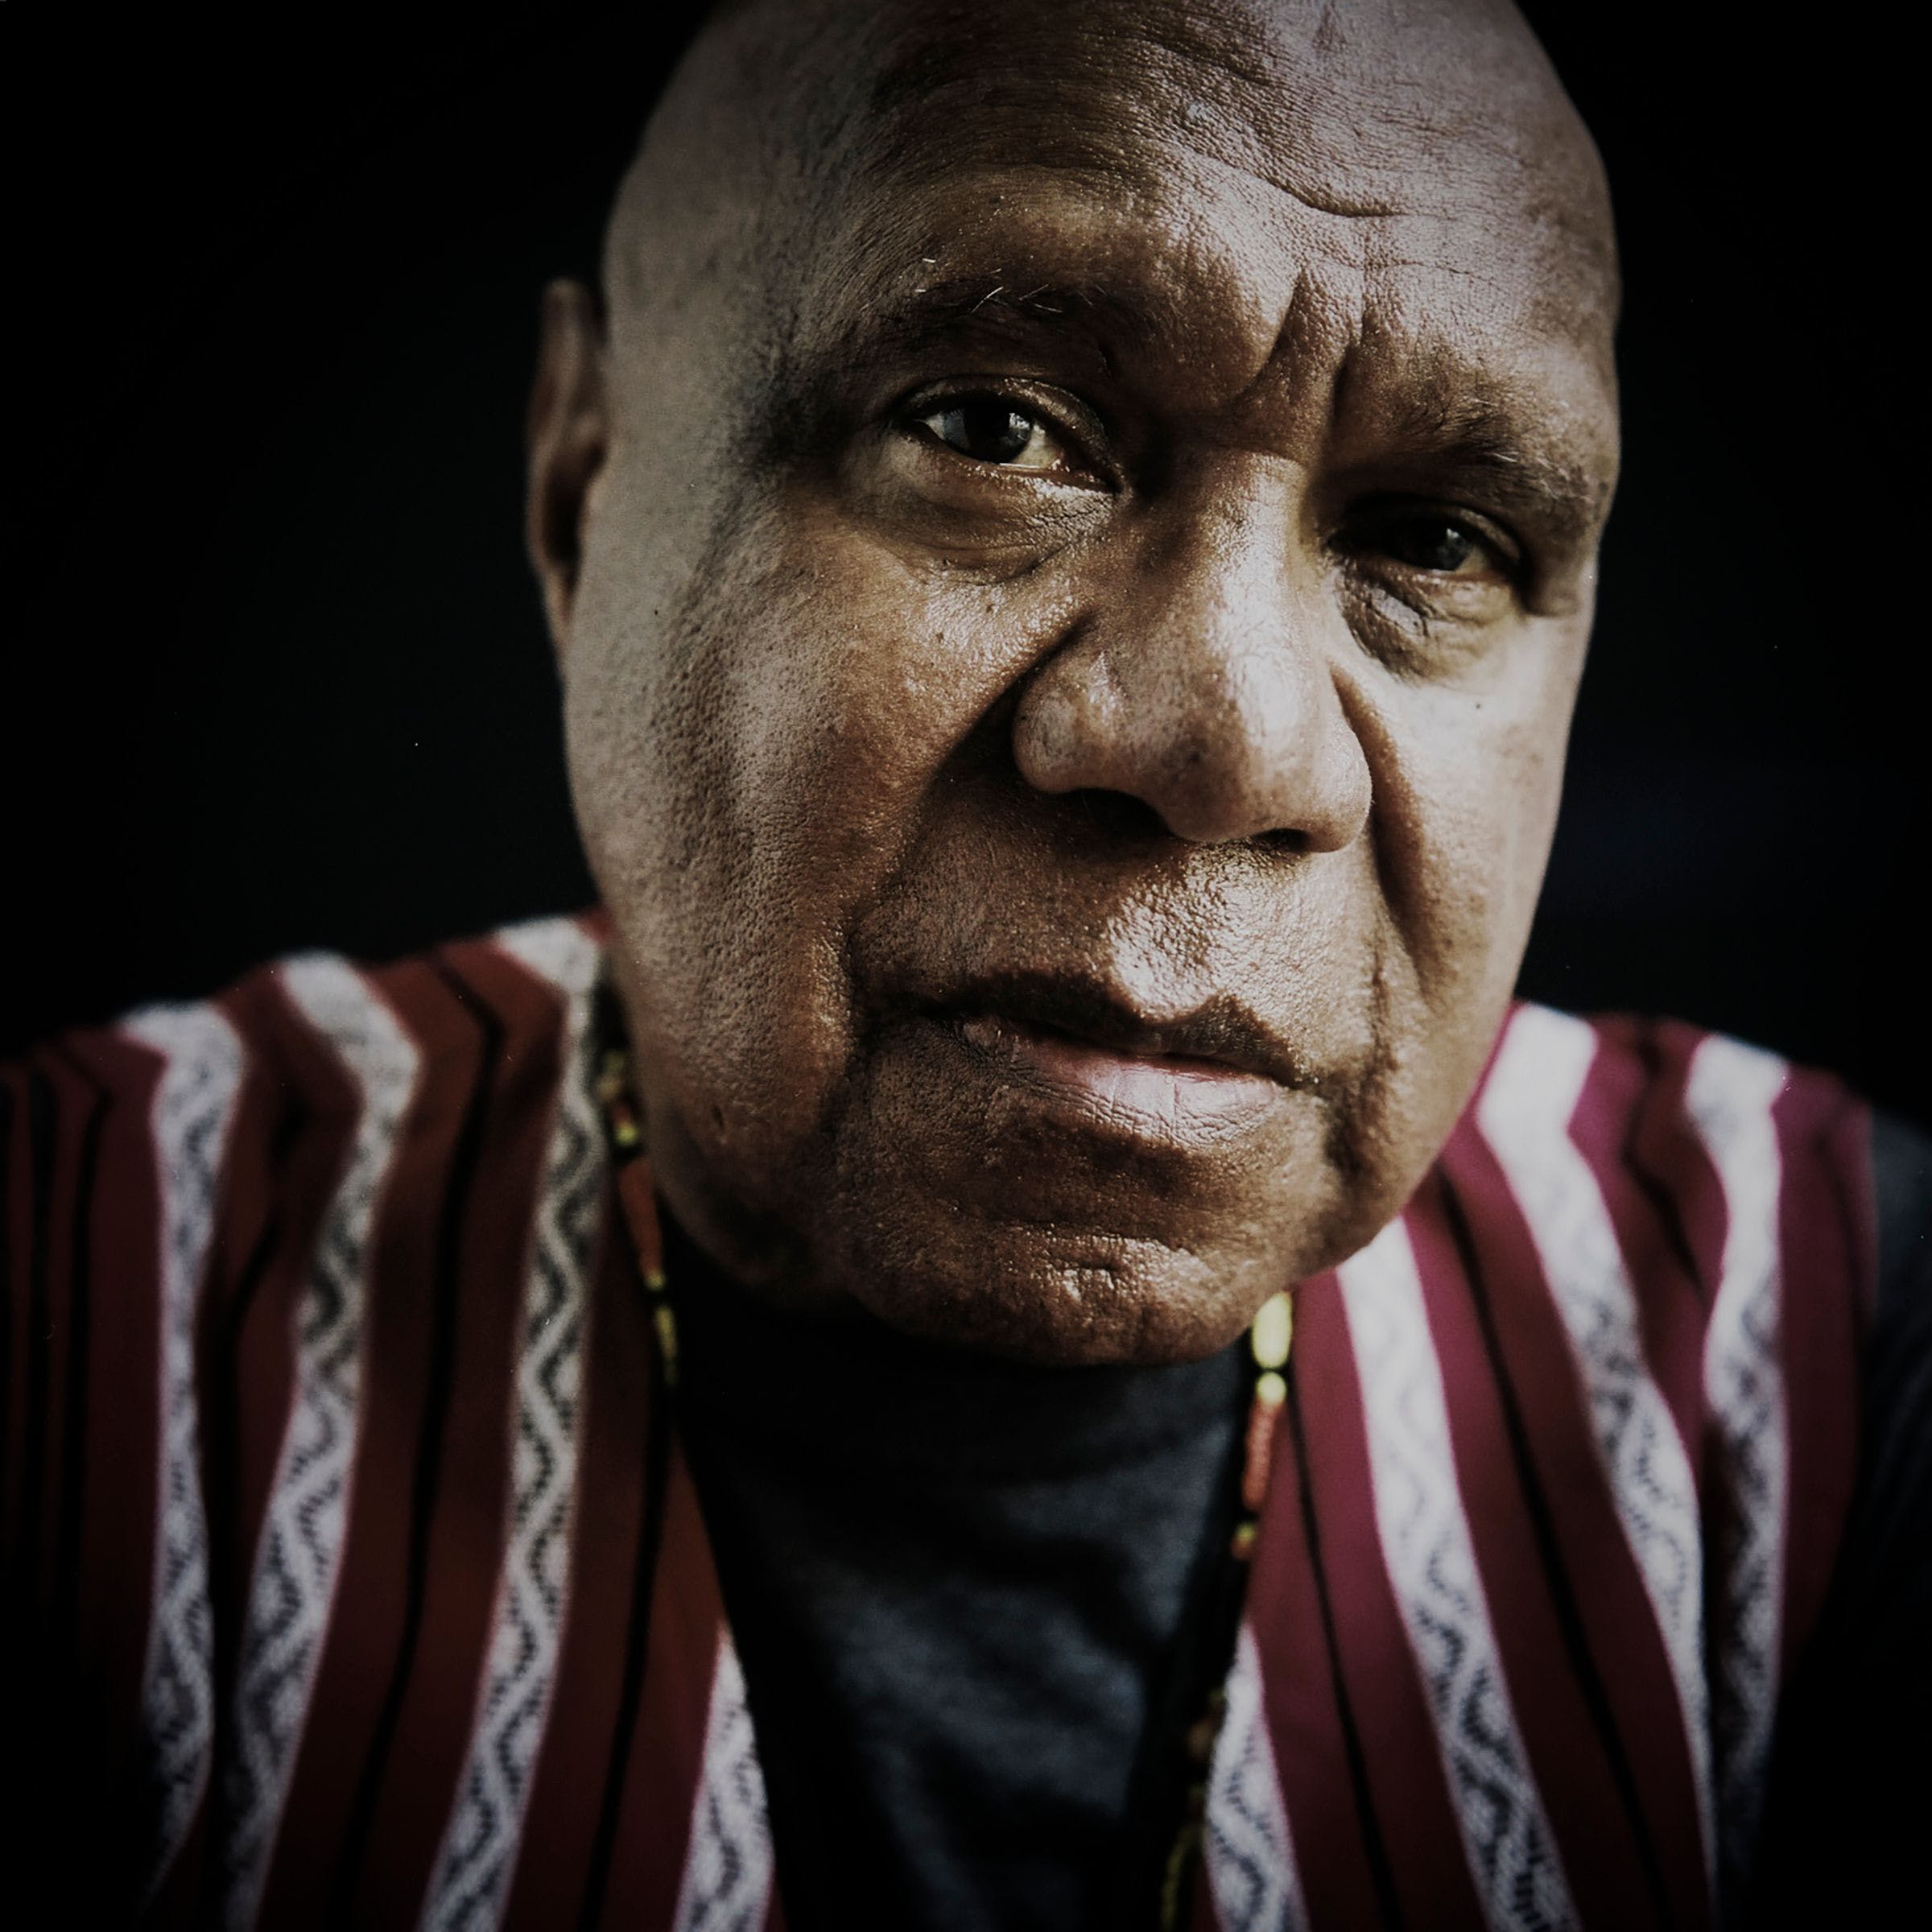 Archie Roach Tell Me Why - Accommodation Resorts